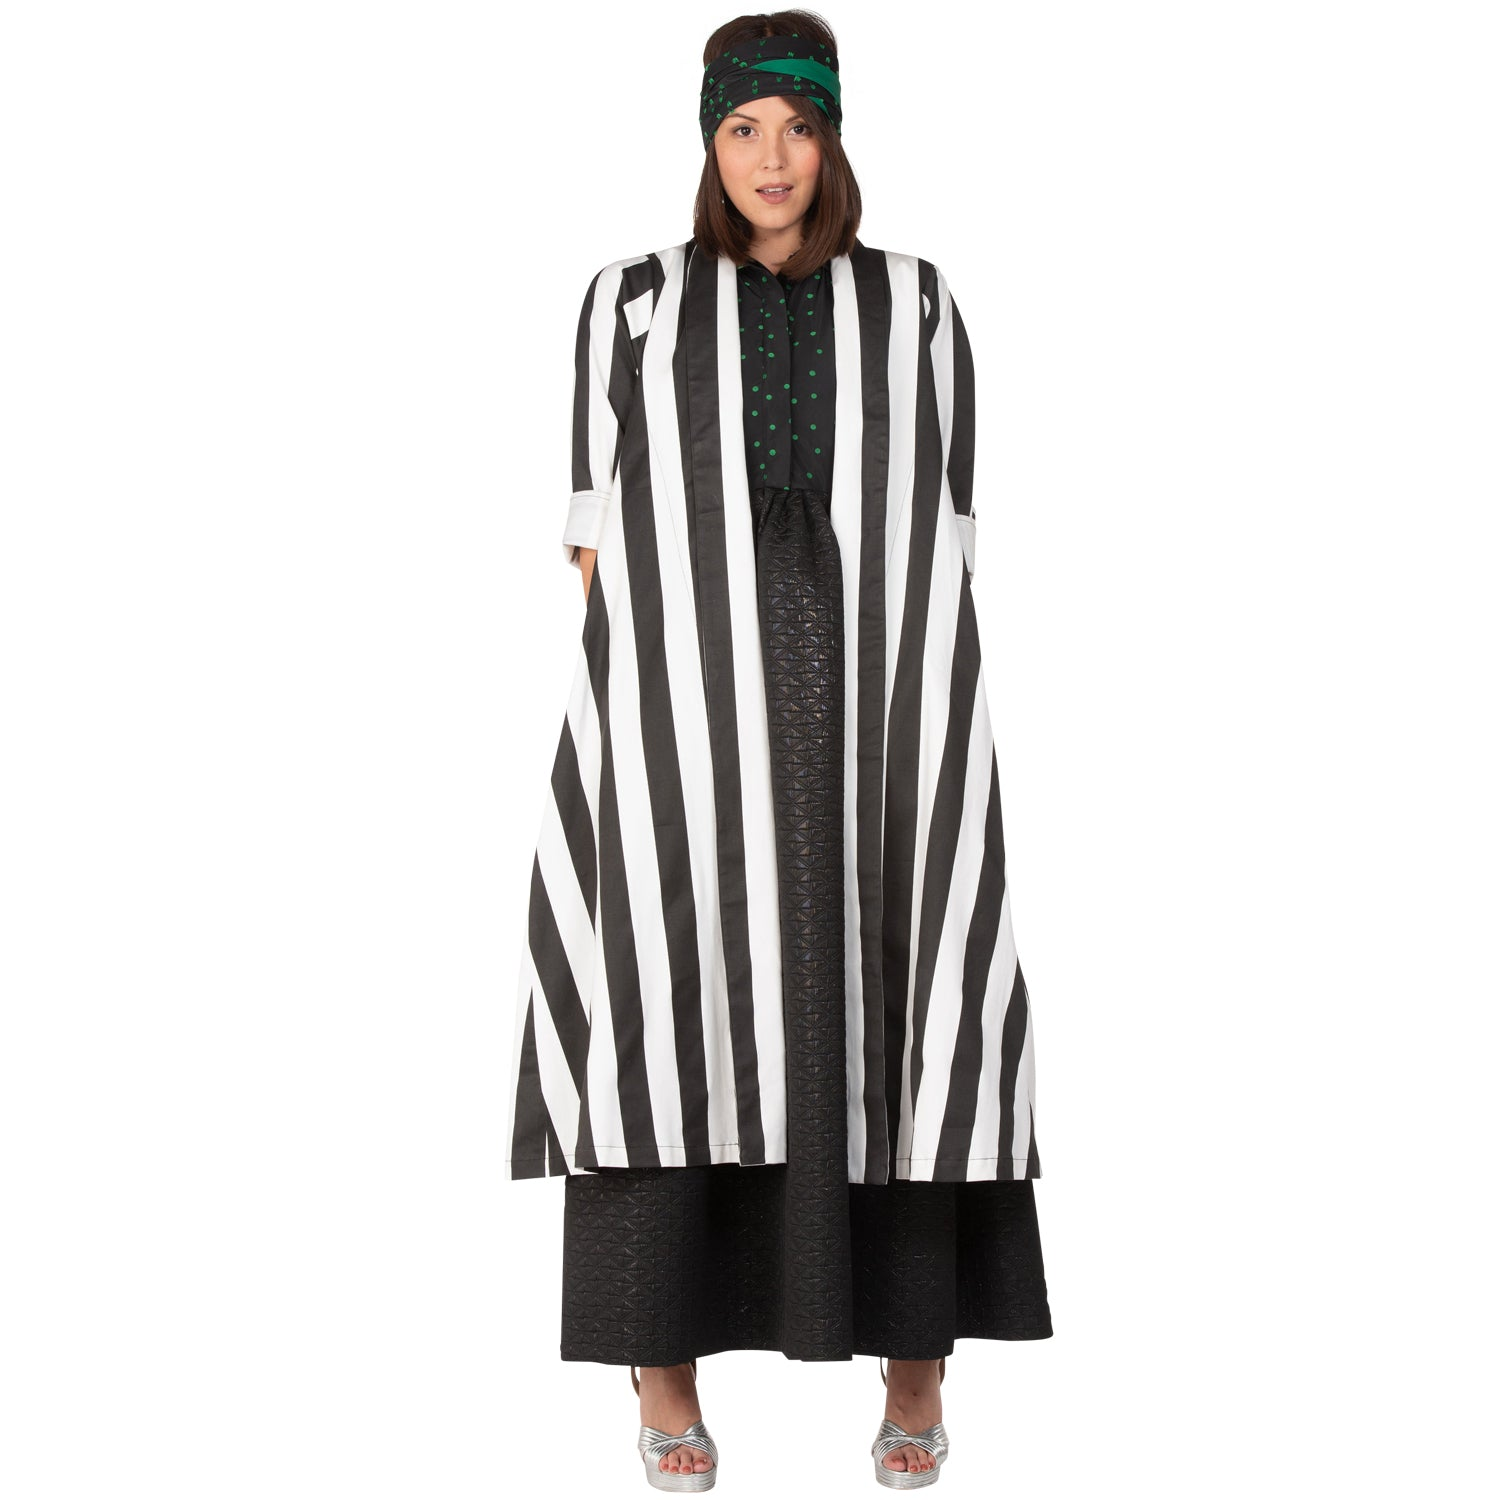 9a50ff42d93de Swing Coat - Black & White Cotton Stripe – BURU